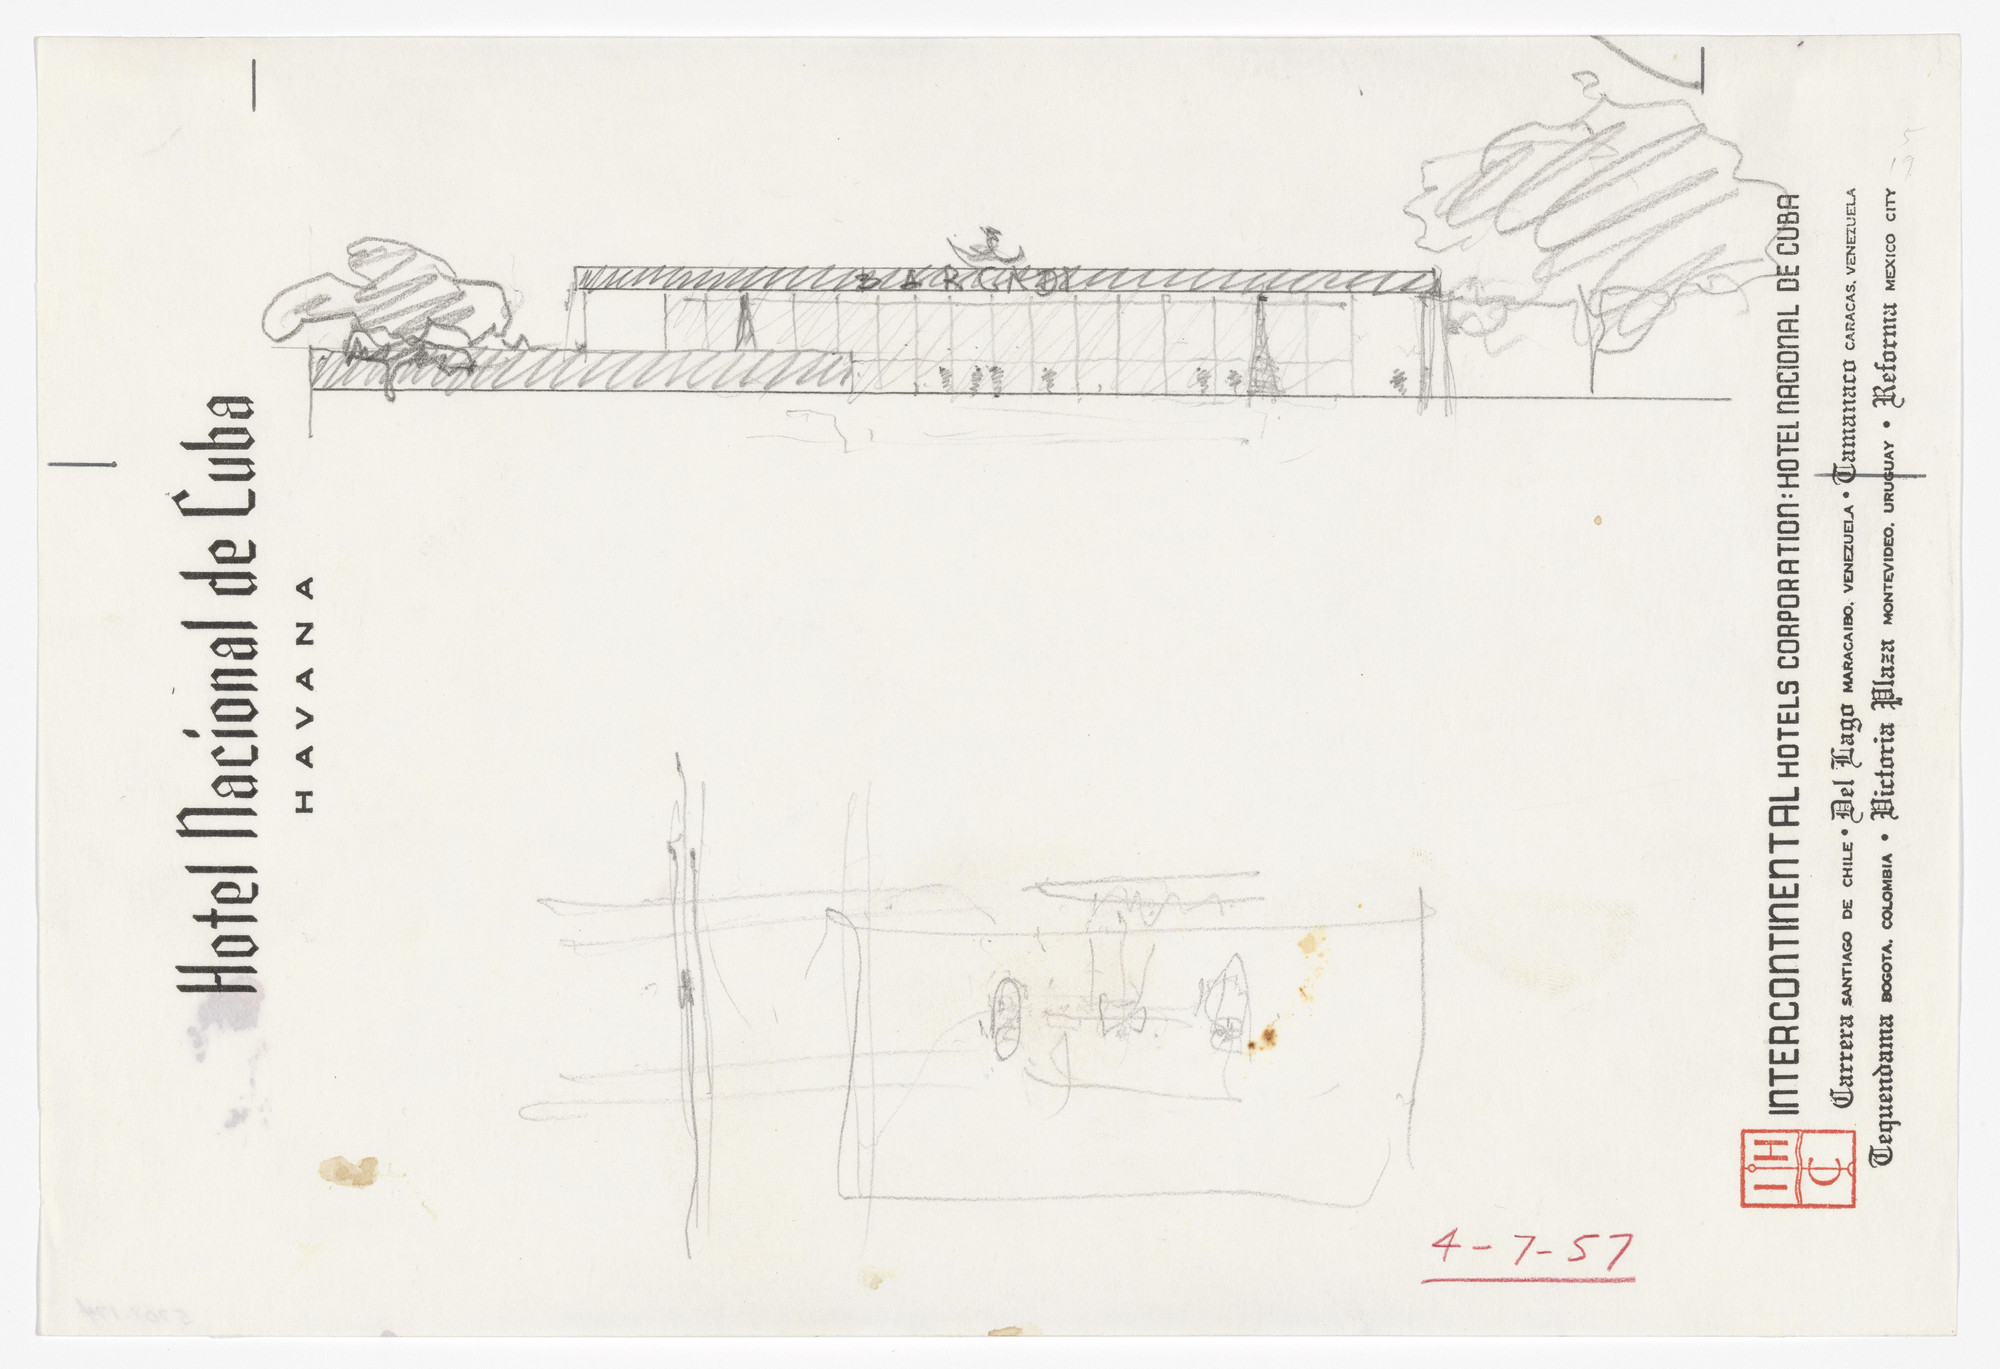 Ludwig Mies van der Rohe. New National Gallery, Berlin, Germany (Longitudinal section). 1967